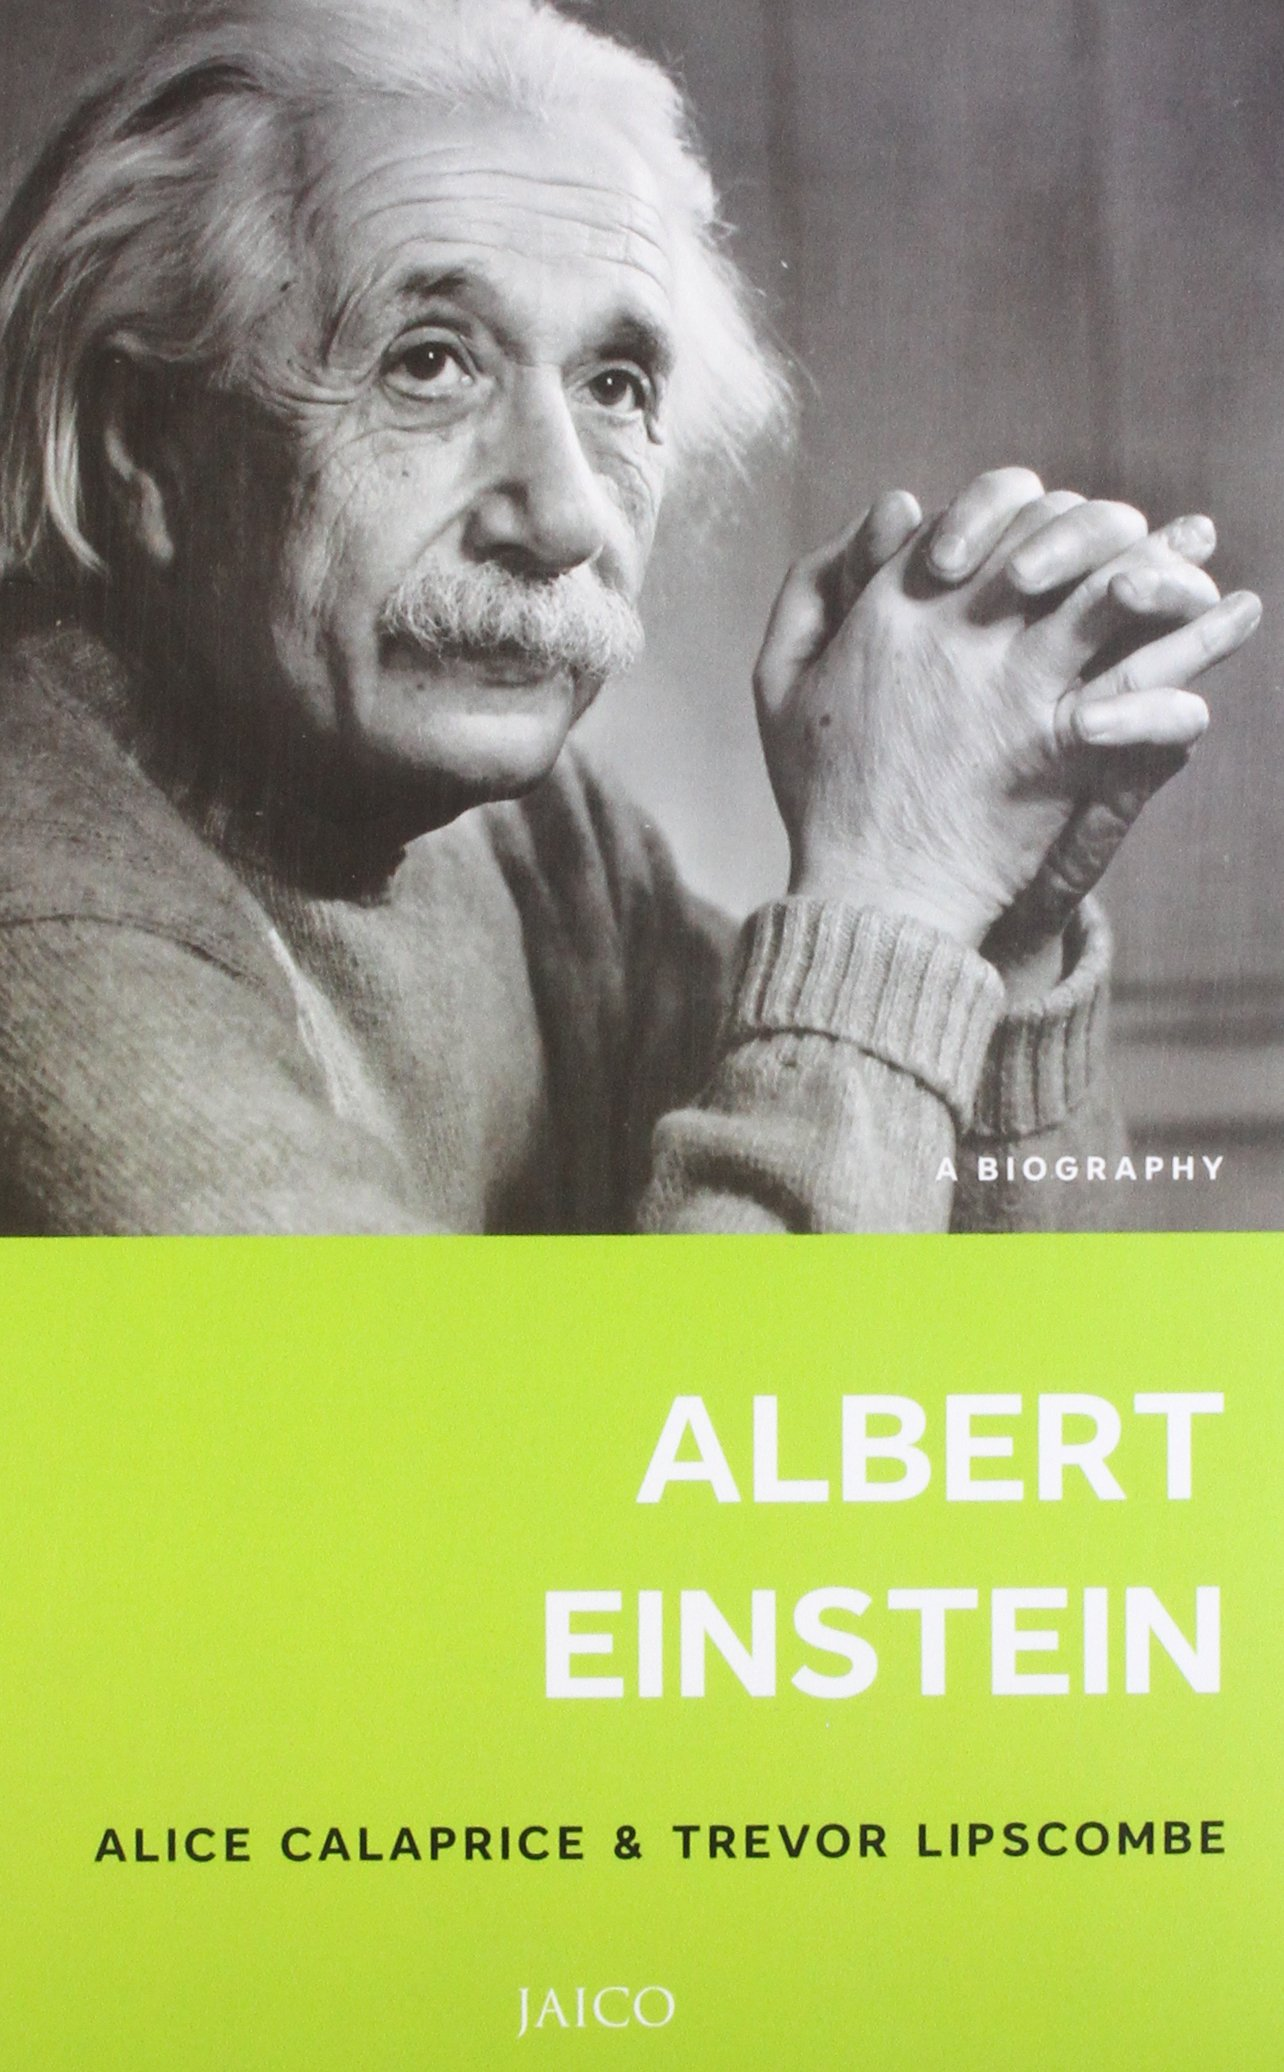 buy albert einstein a biography book online at low prices in buy albert einstein a biography book online at low prices in albert einstein a biography reviews ratings in